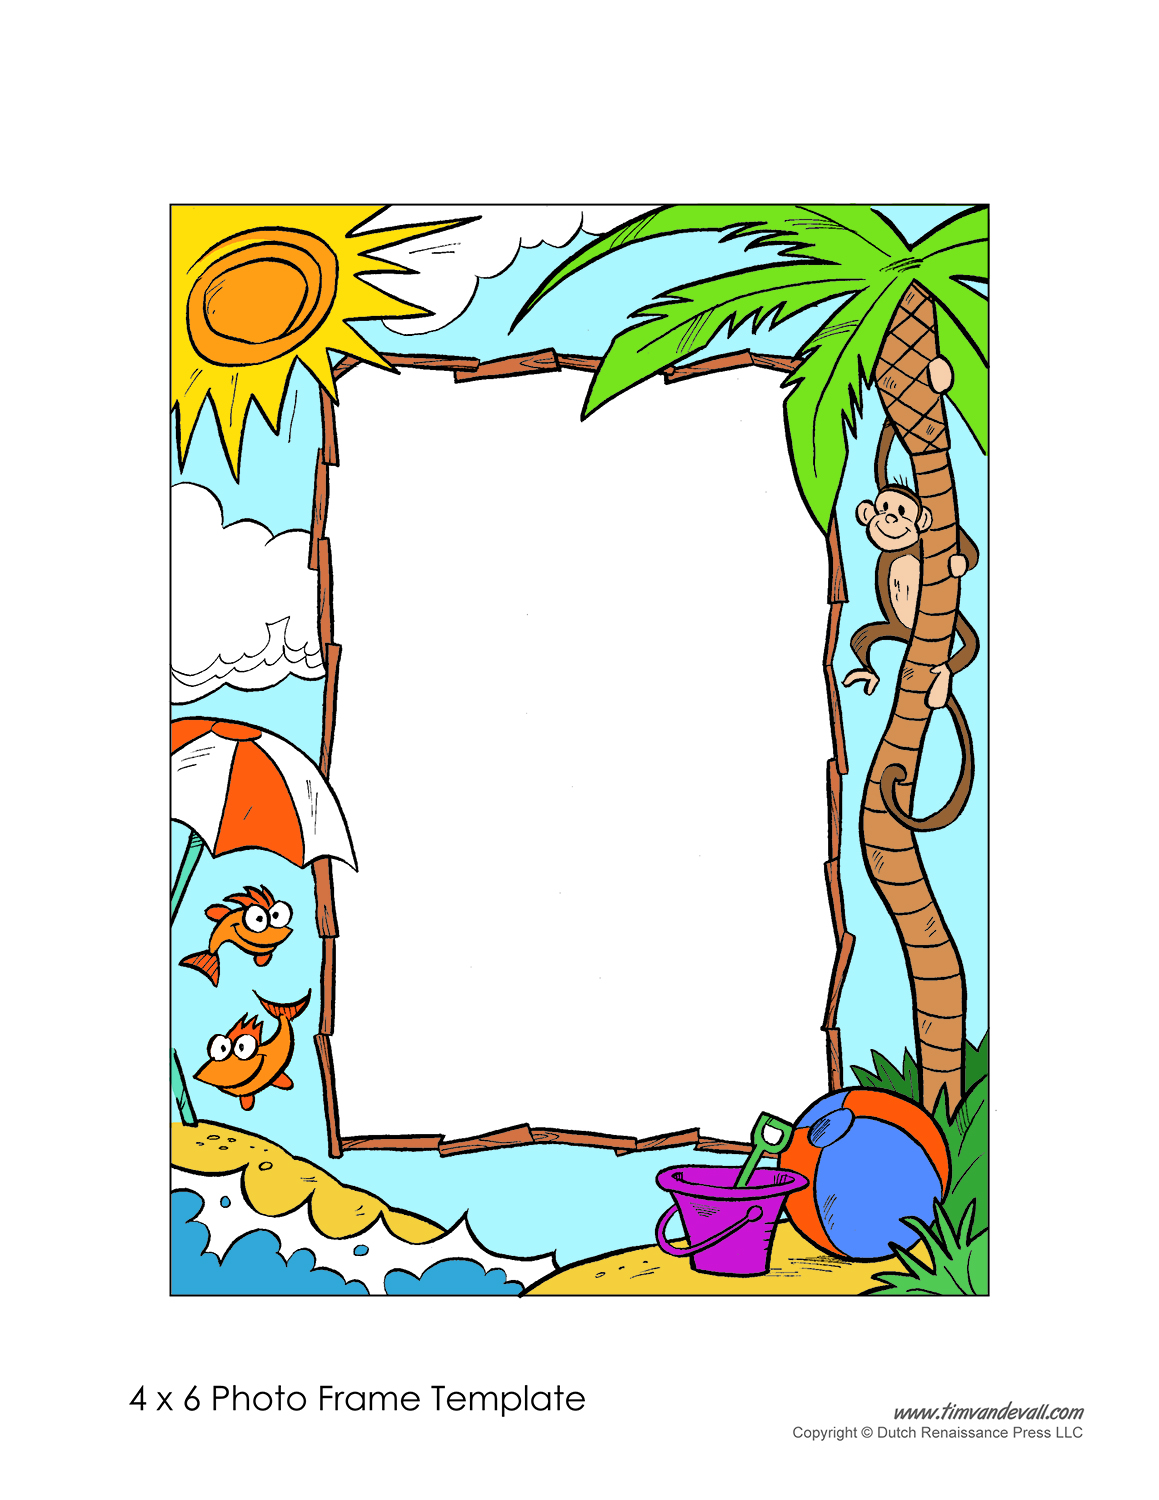 printable photo frame template - Art Templates For Kids